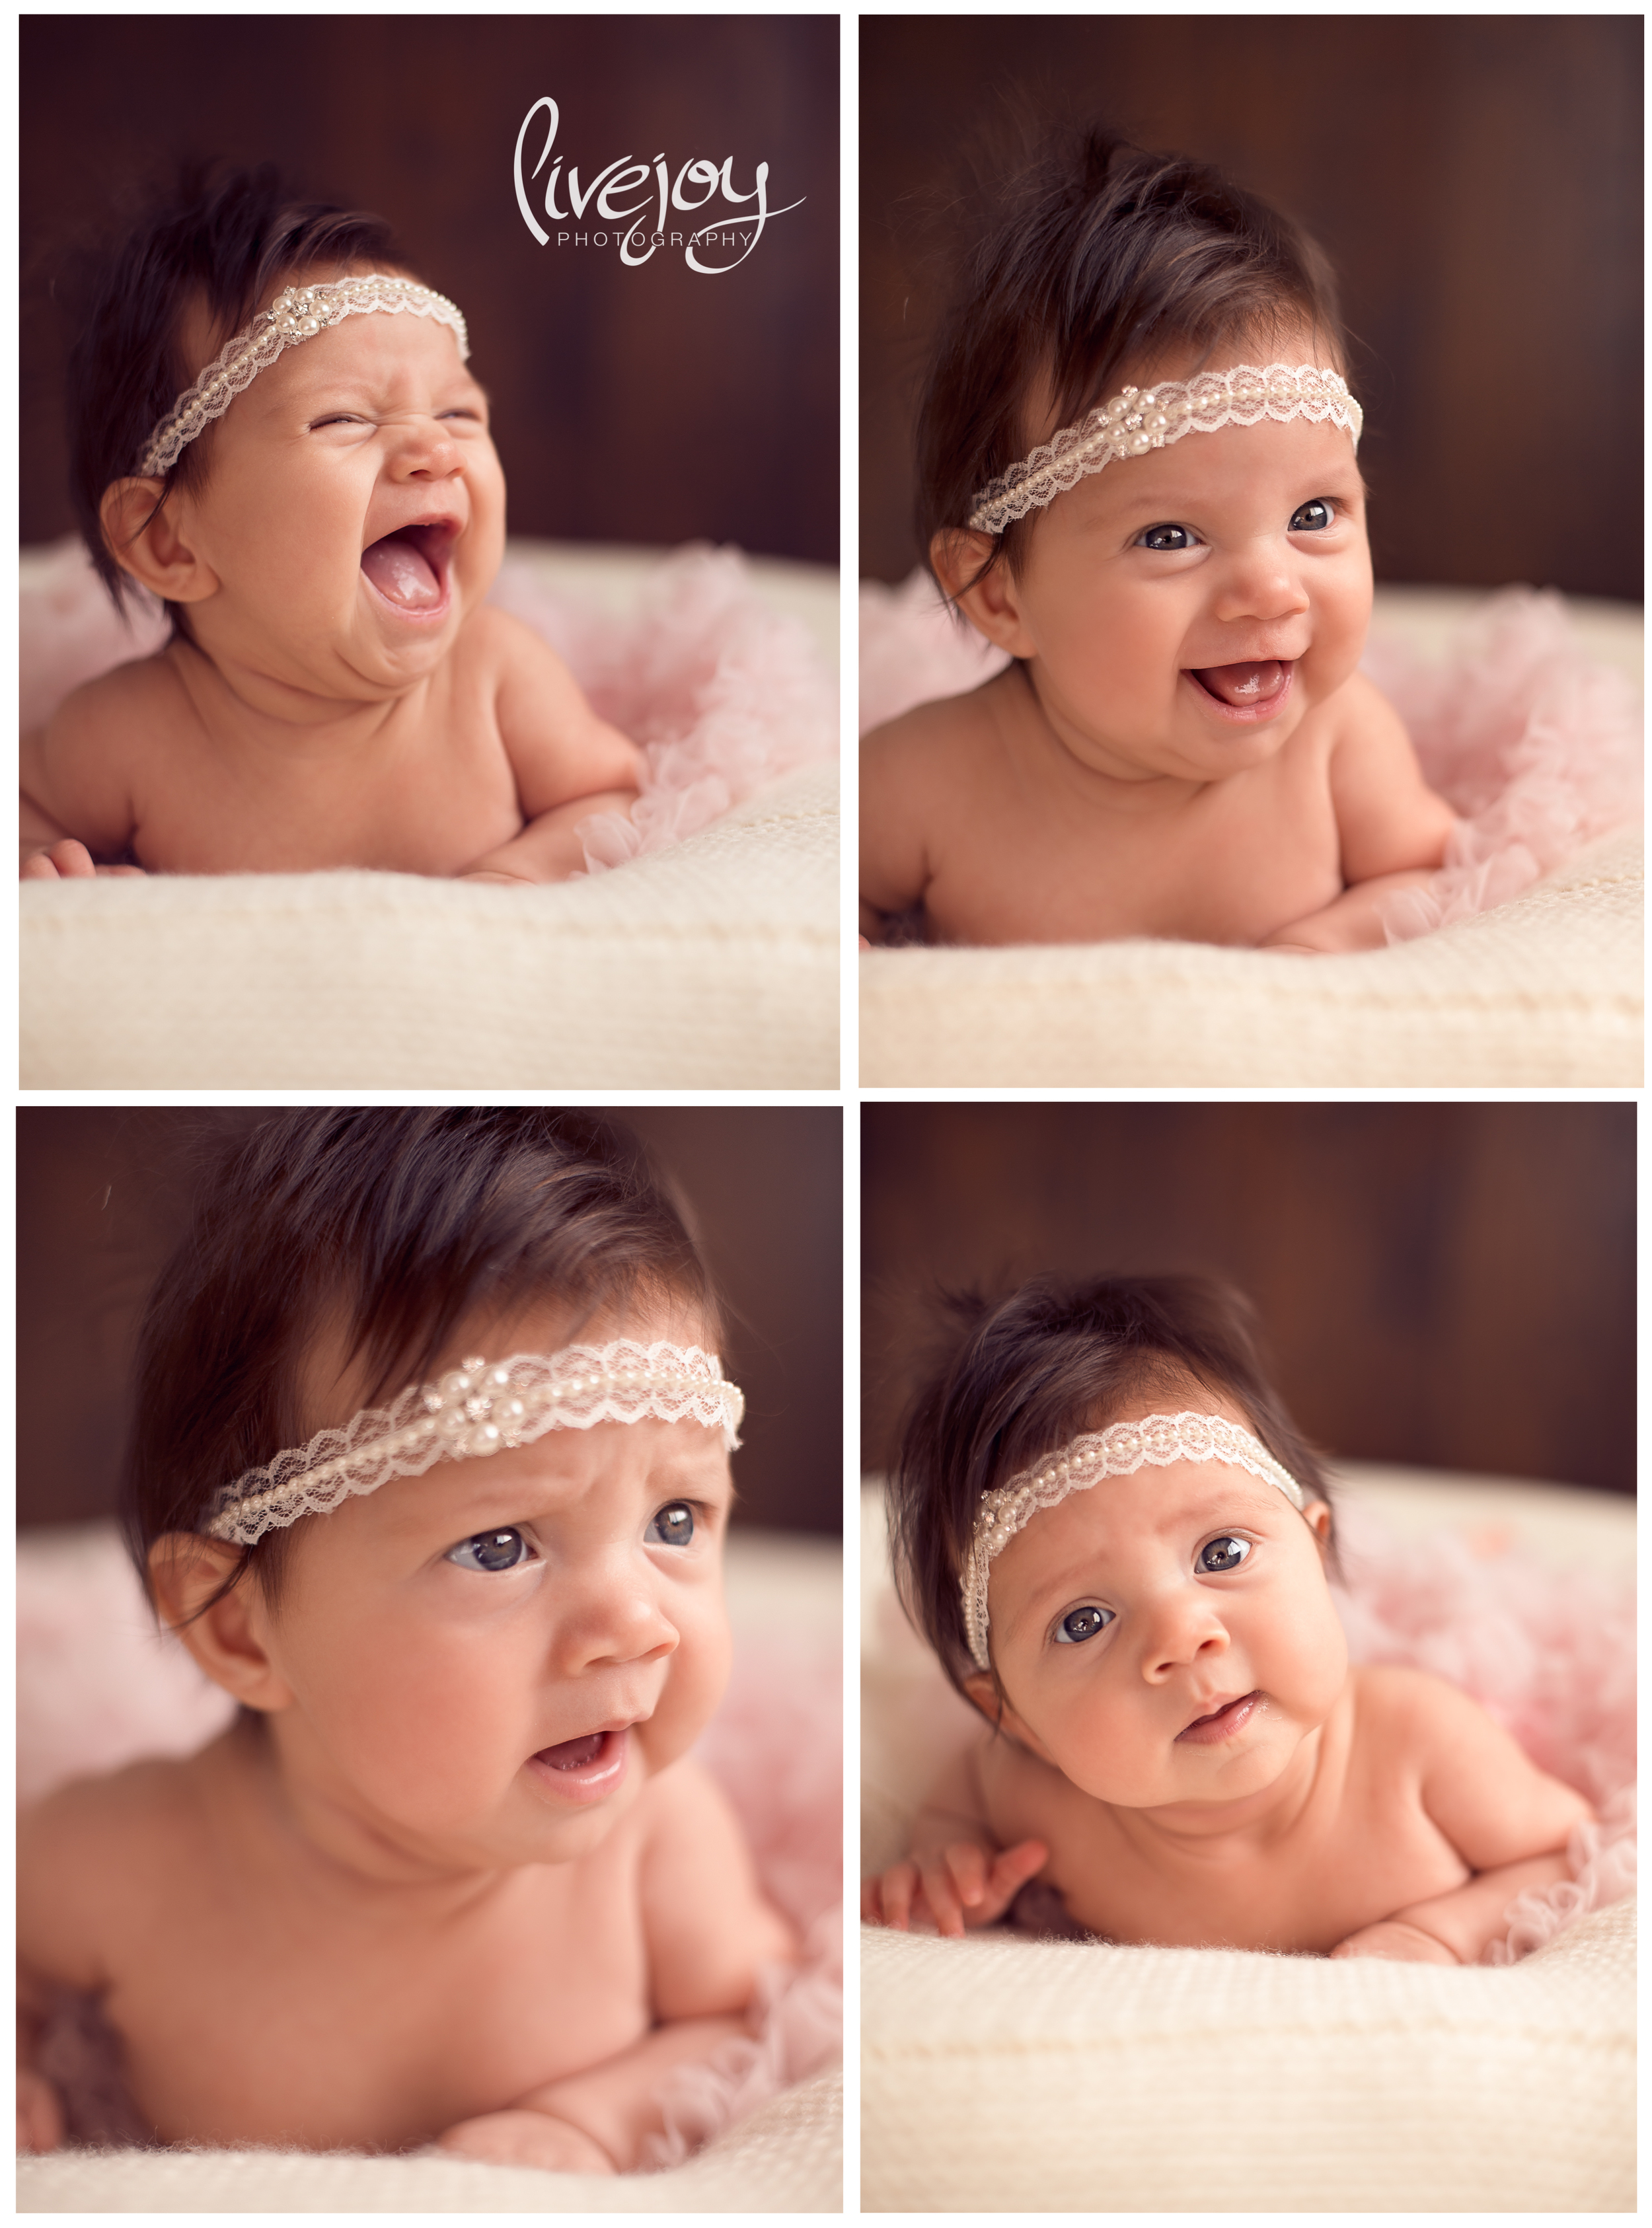 The many hilarious faces of Leila :) 3 Month Baby Photos | LiveJoy Photography | Oregon